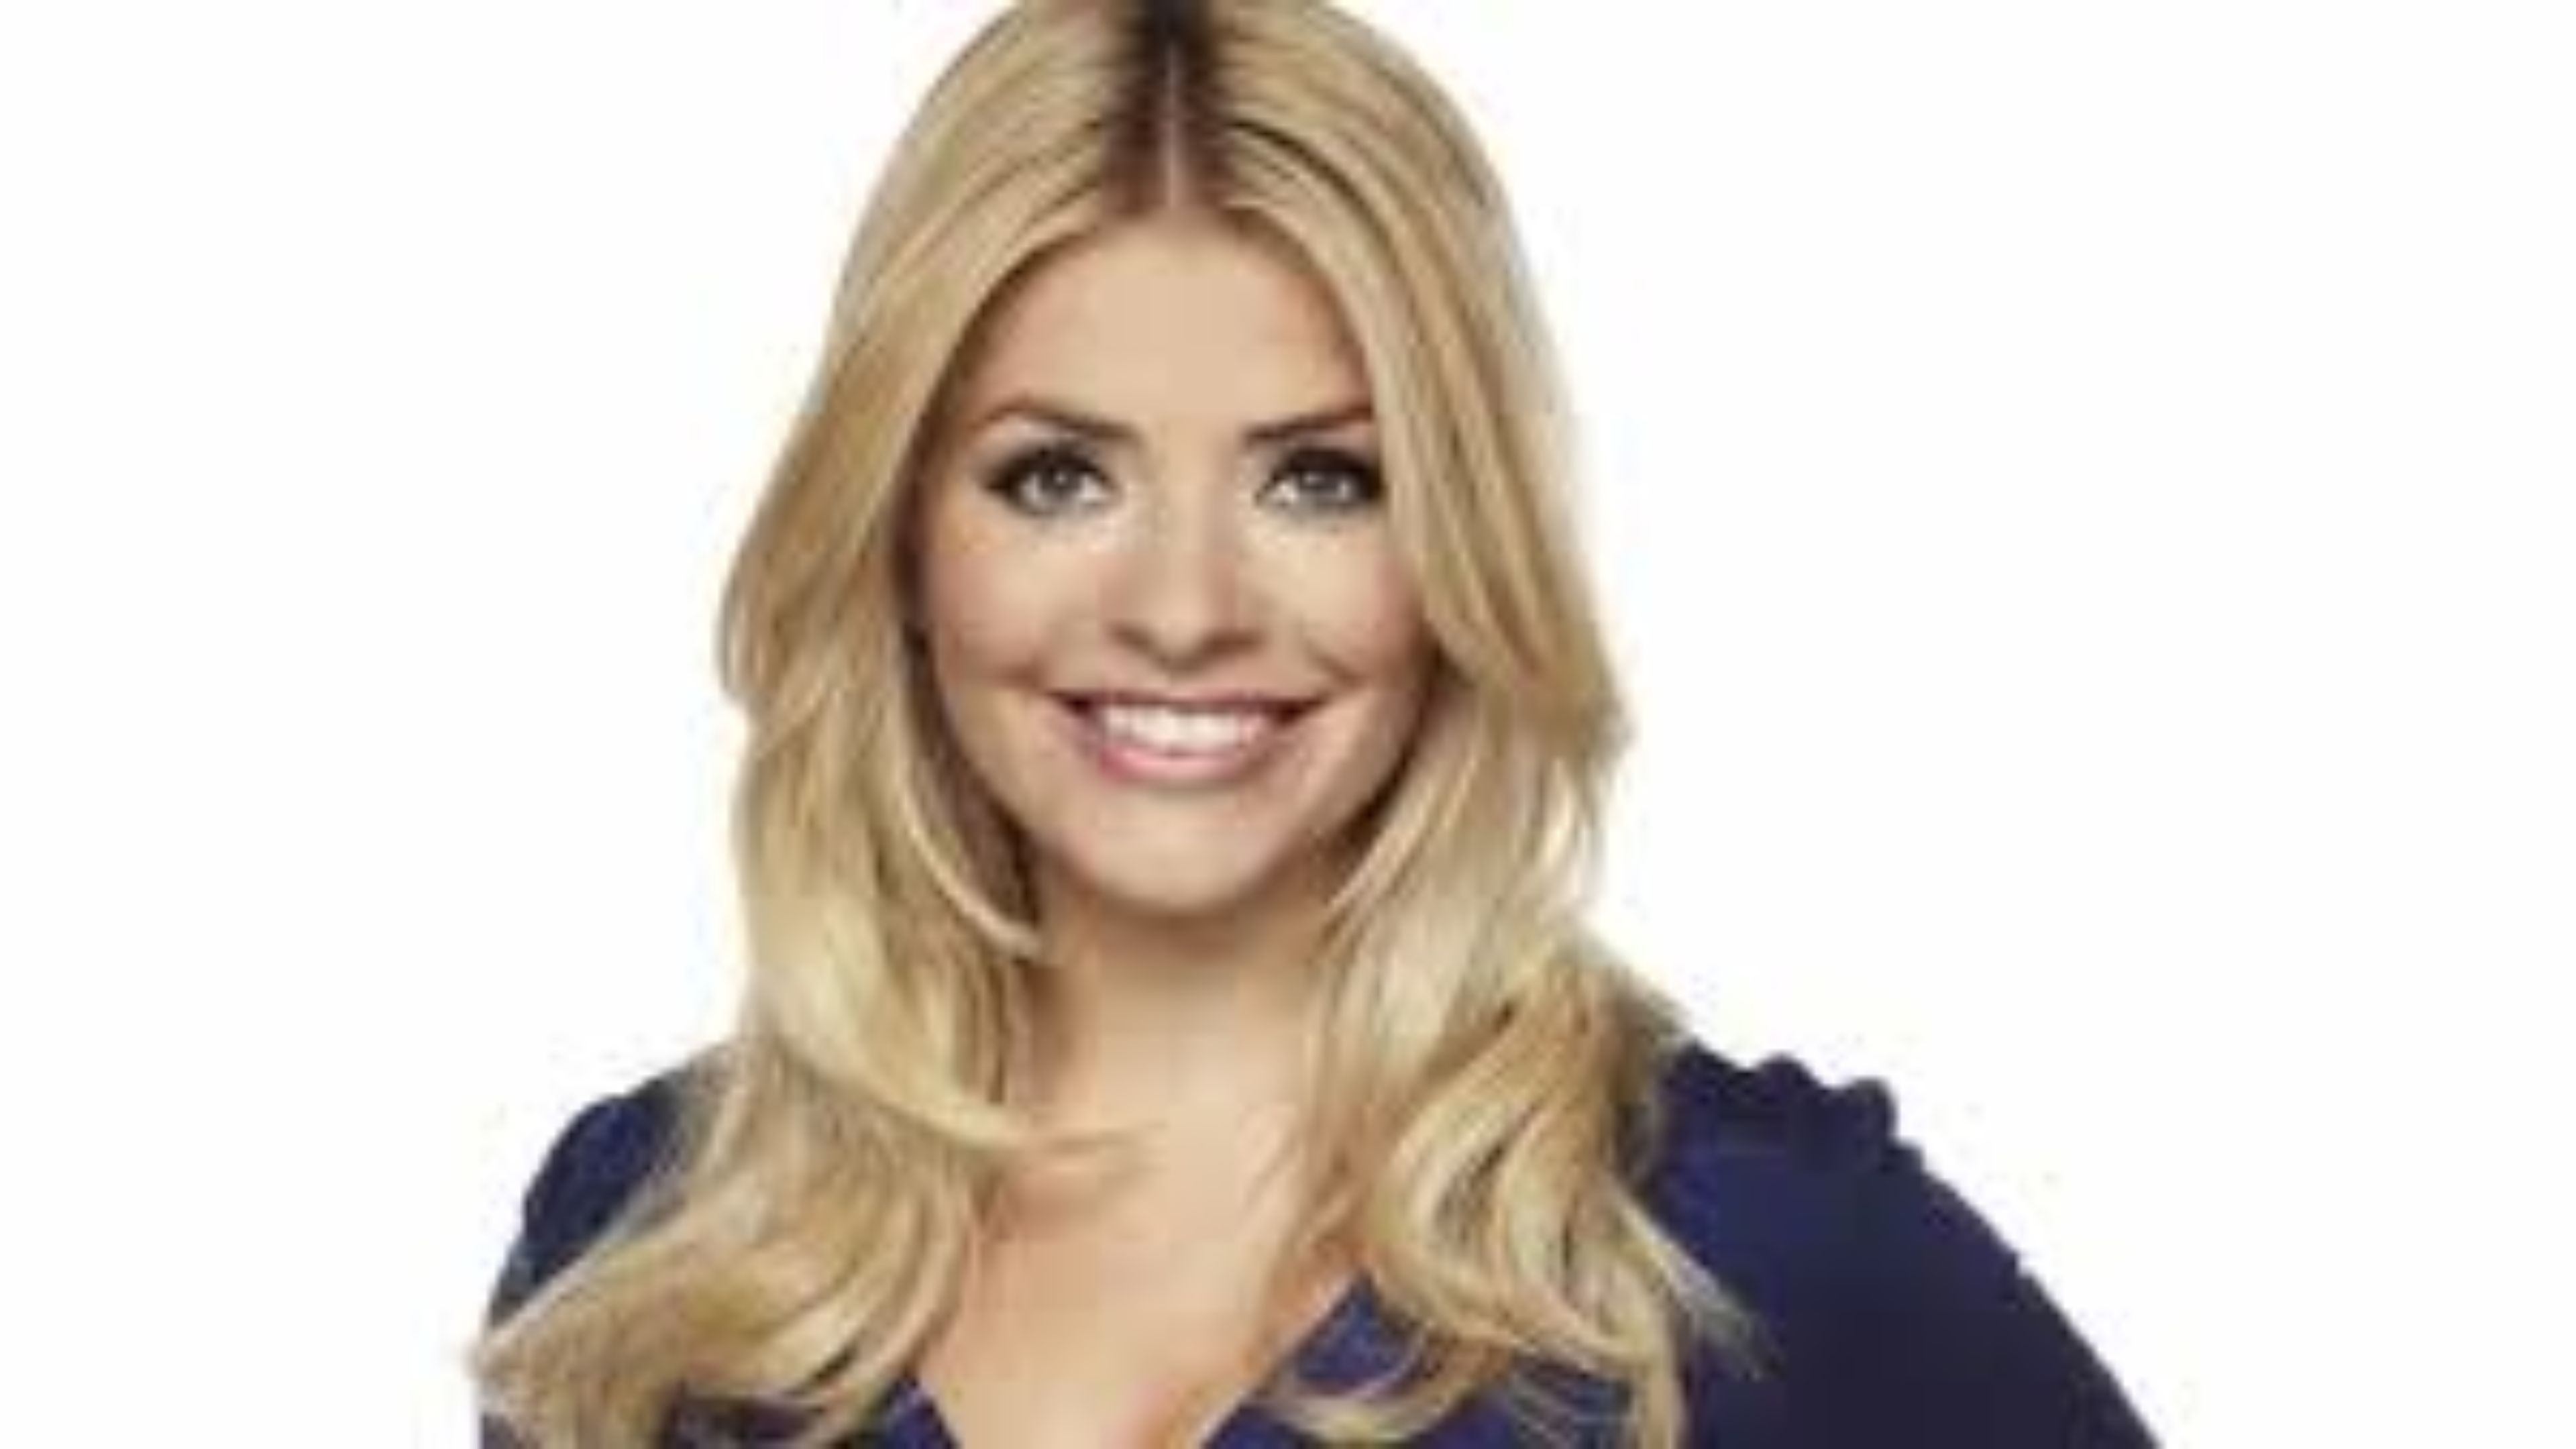 3840x2160 - Holly Willoughby Wallpapers 11